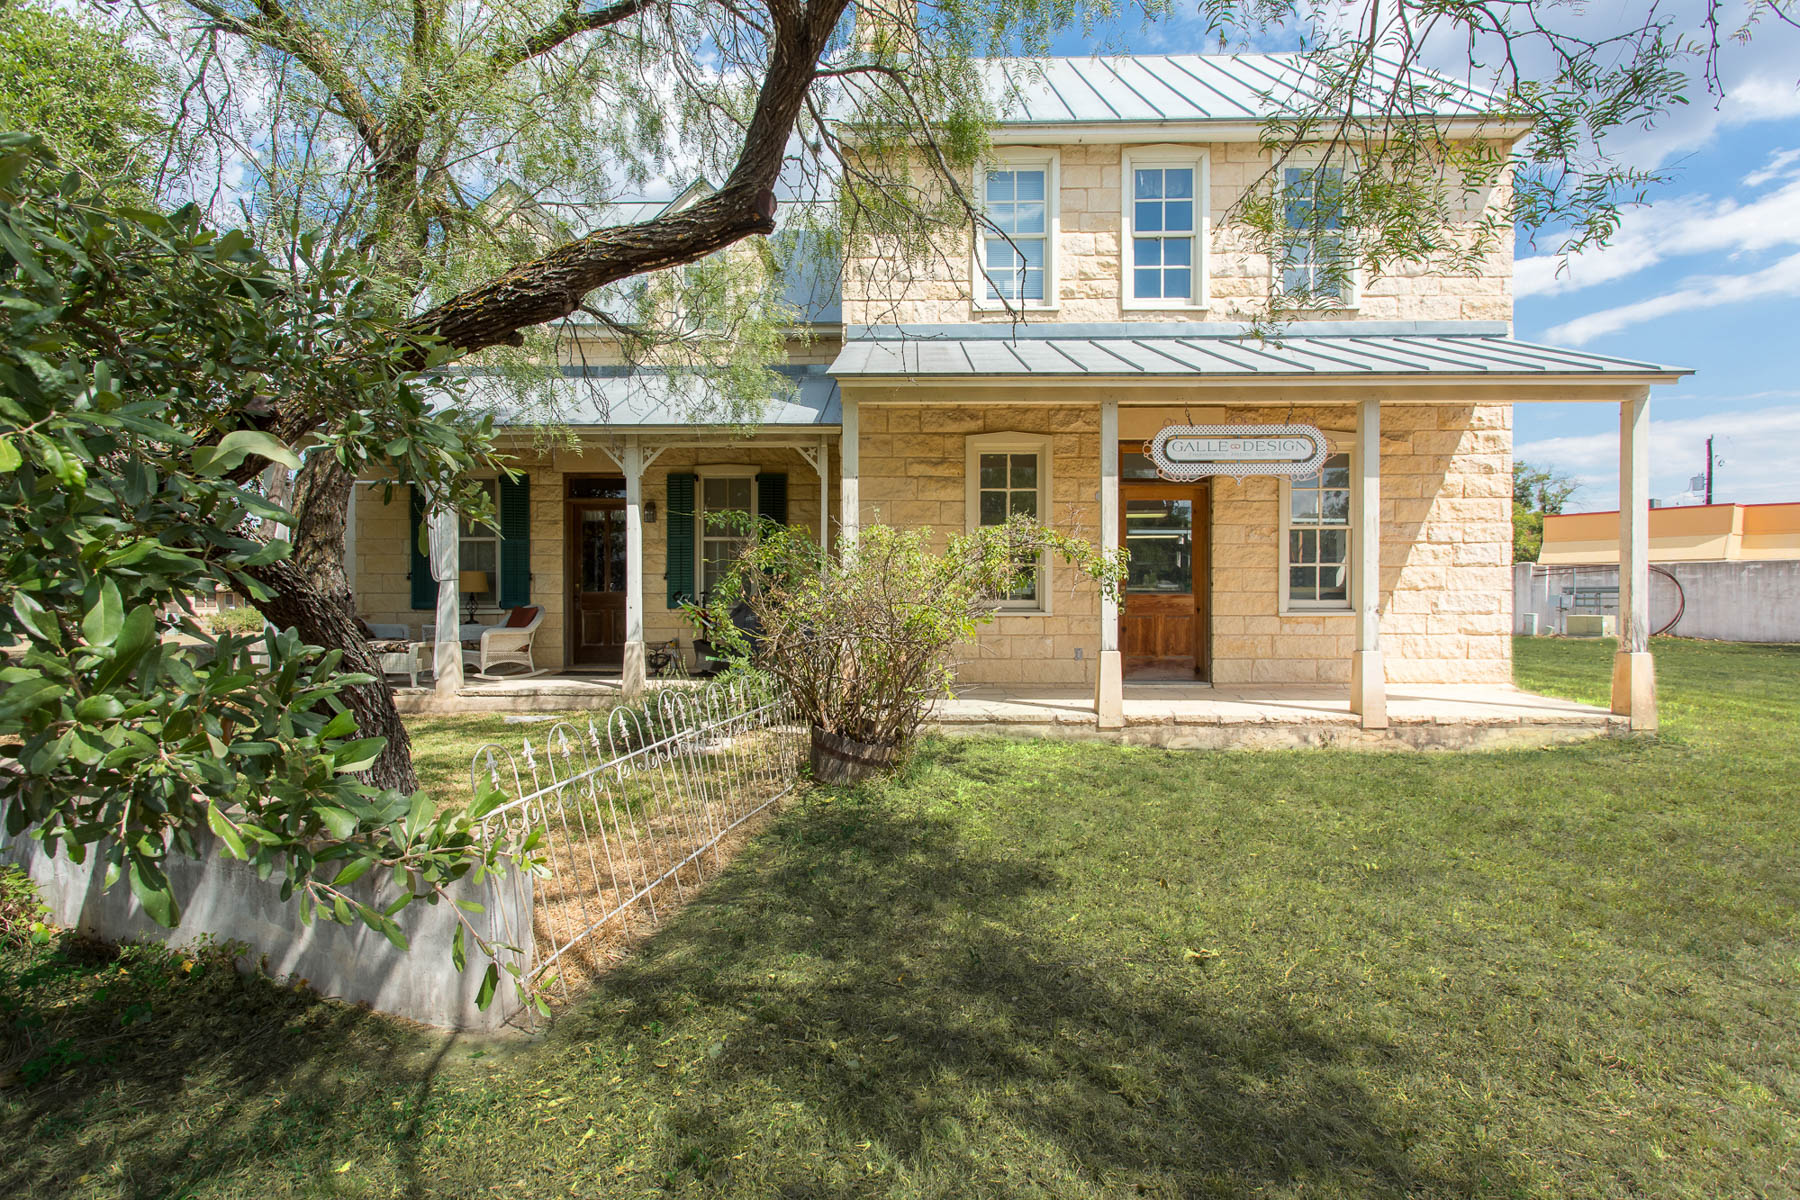 Single Family Home for Sale at Texas Hill Country Style Homes in Fredericksburg 605 E Austin St Fredericksburg, Texas 78624 United States